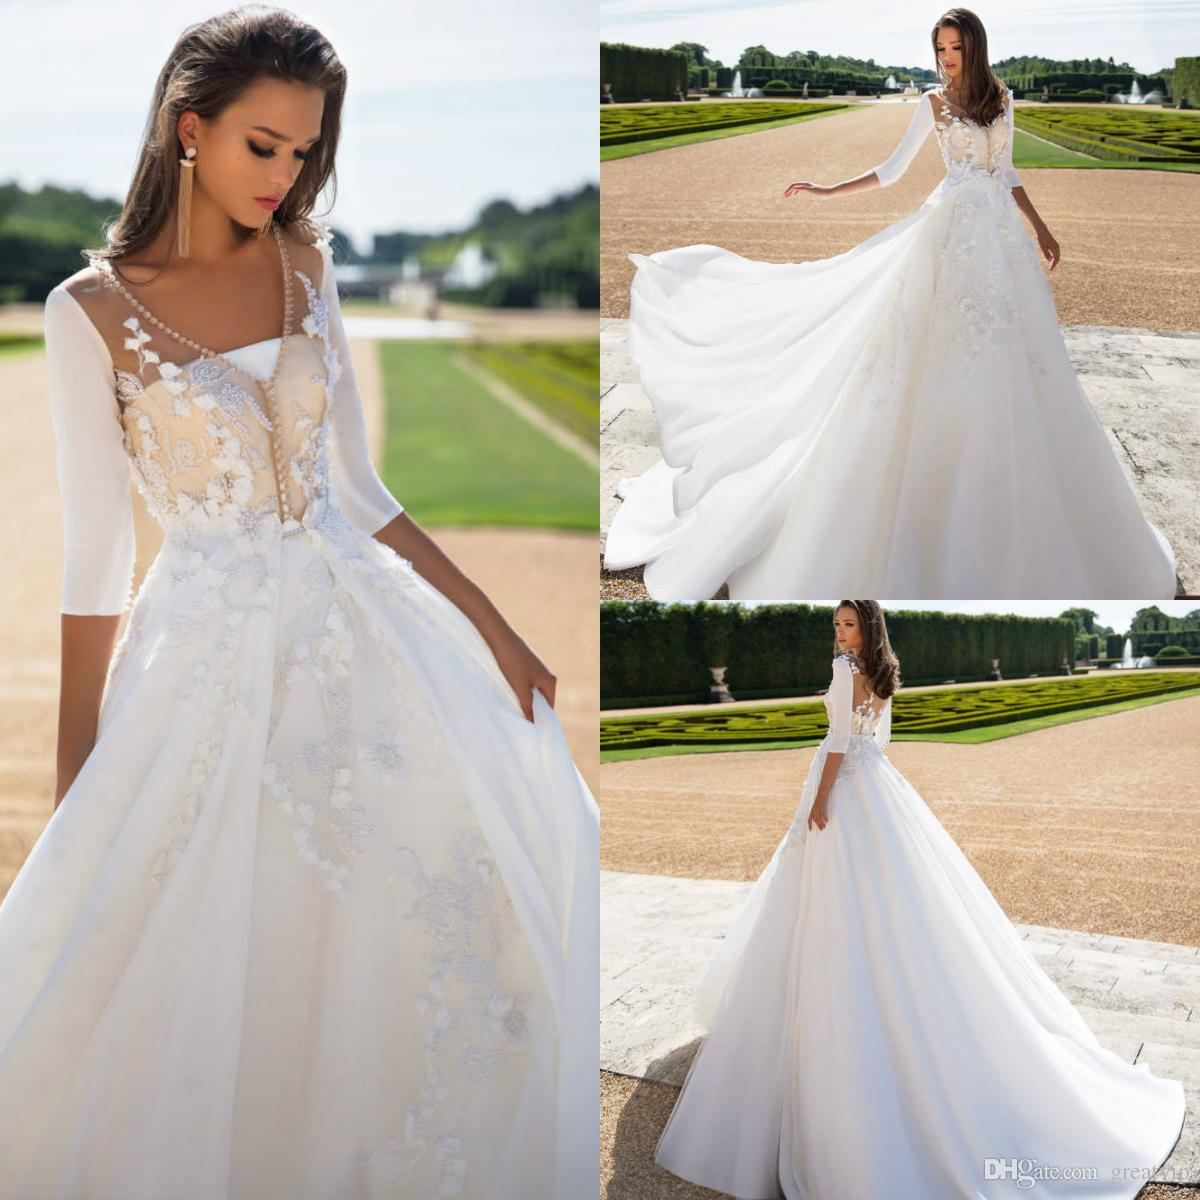 Discount Milla Nova 2019 Autumn Wedding Dresses A Line Applique Lace 34 Long Sleeve Sweep Train Plus Size Bridal Gowns Robe De Mari�e Simple: Simple Fall Themed Wedding Dresses At Websimilar.org